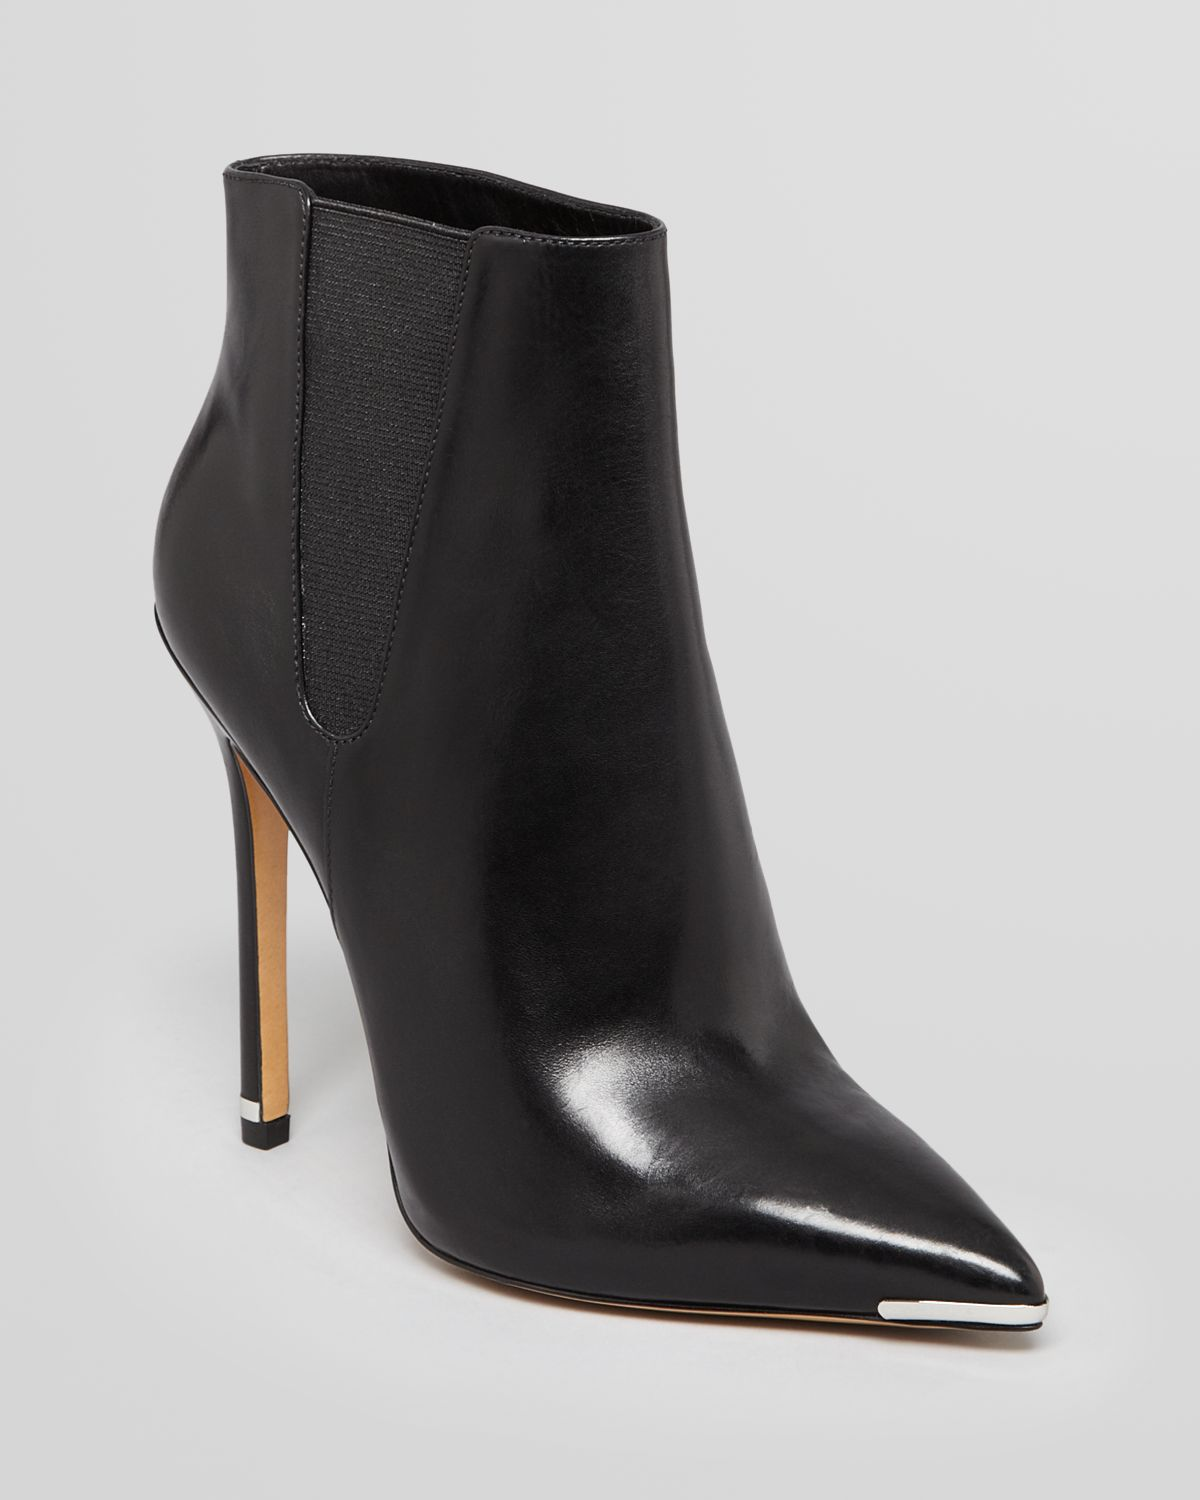 e56655f917a7e Lyst - Michael Kors Pointed Toe Booties Andie High Heel in Black